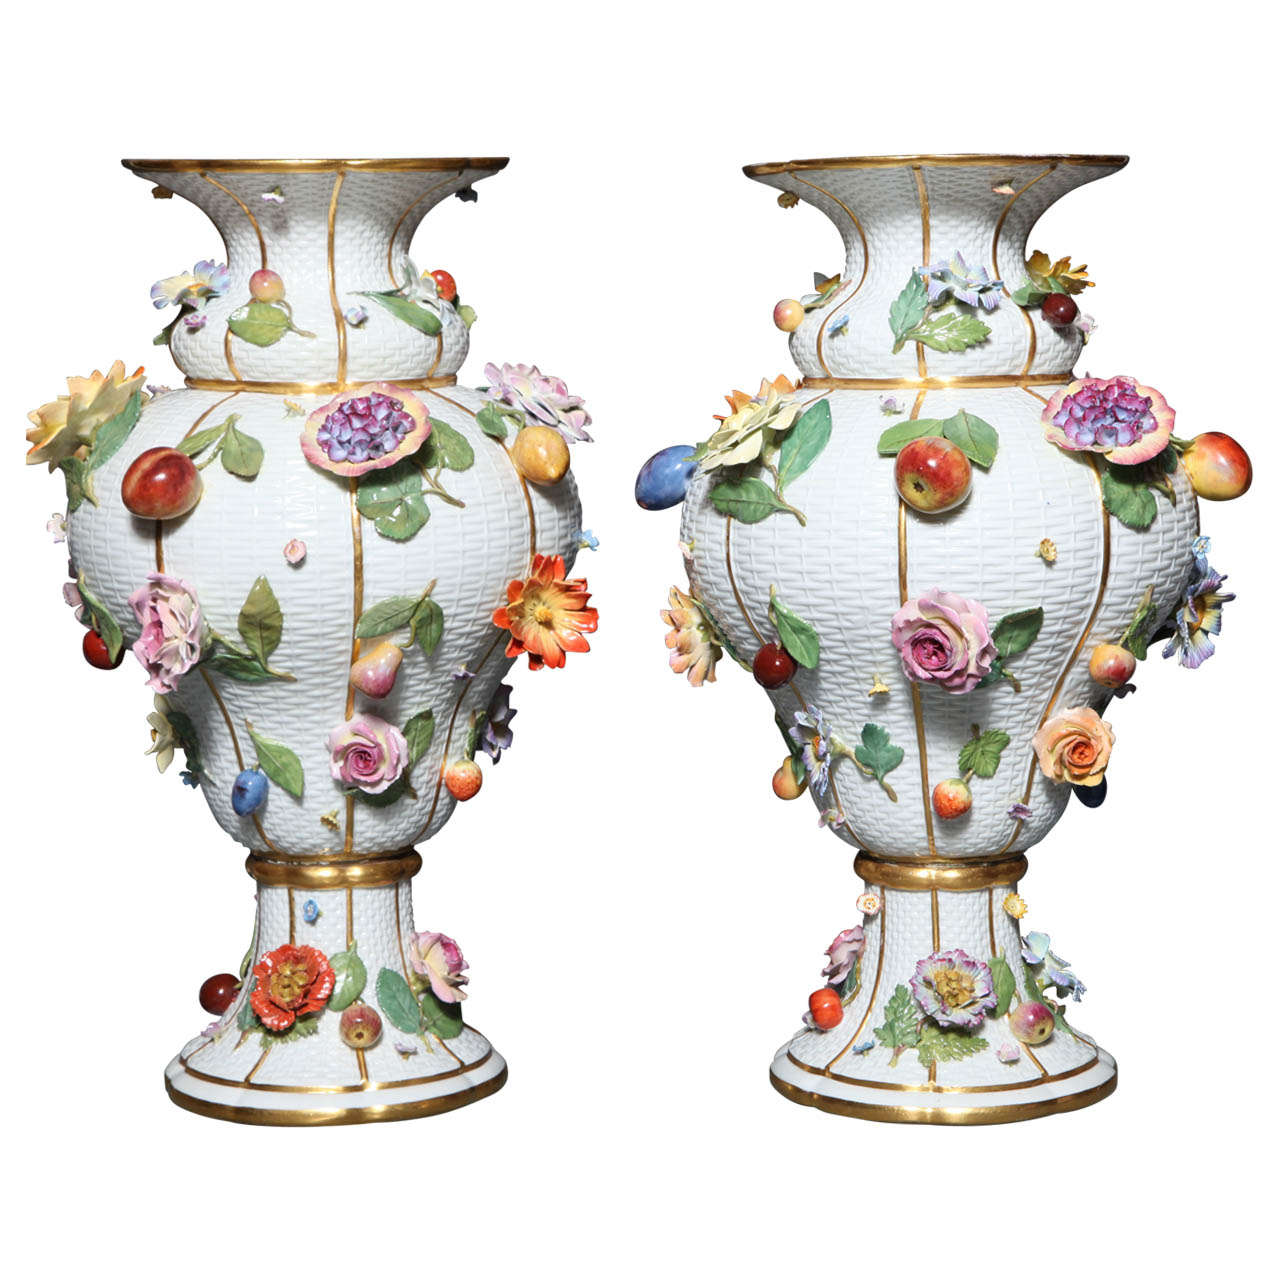 Pair of Meissen Porcelain Vases Encrusted with Raised Flowers and Fruits For Sale